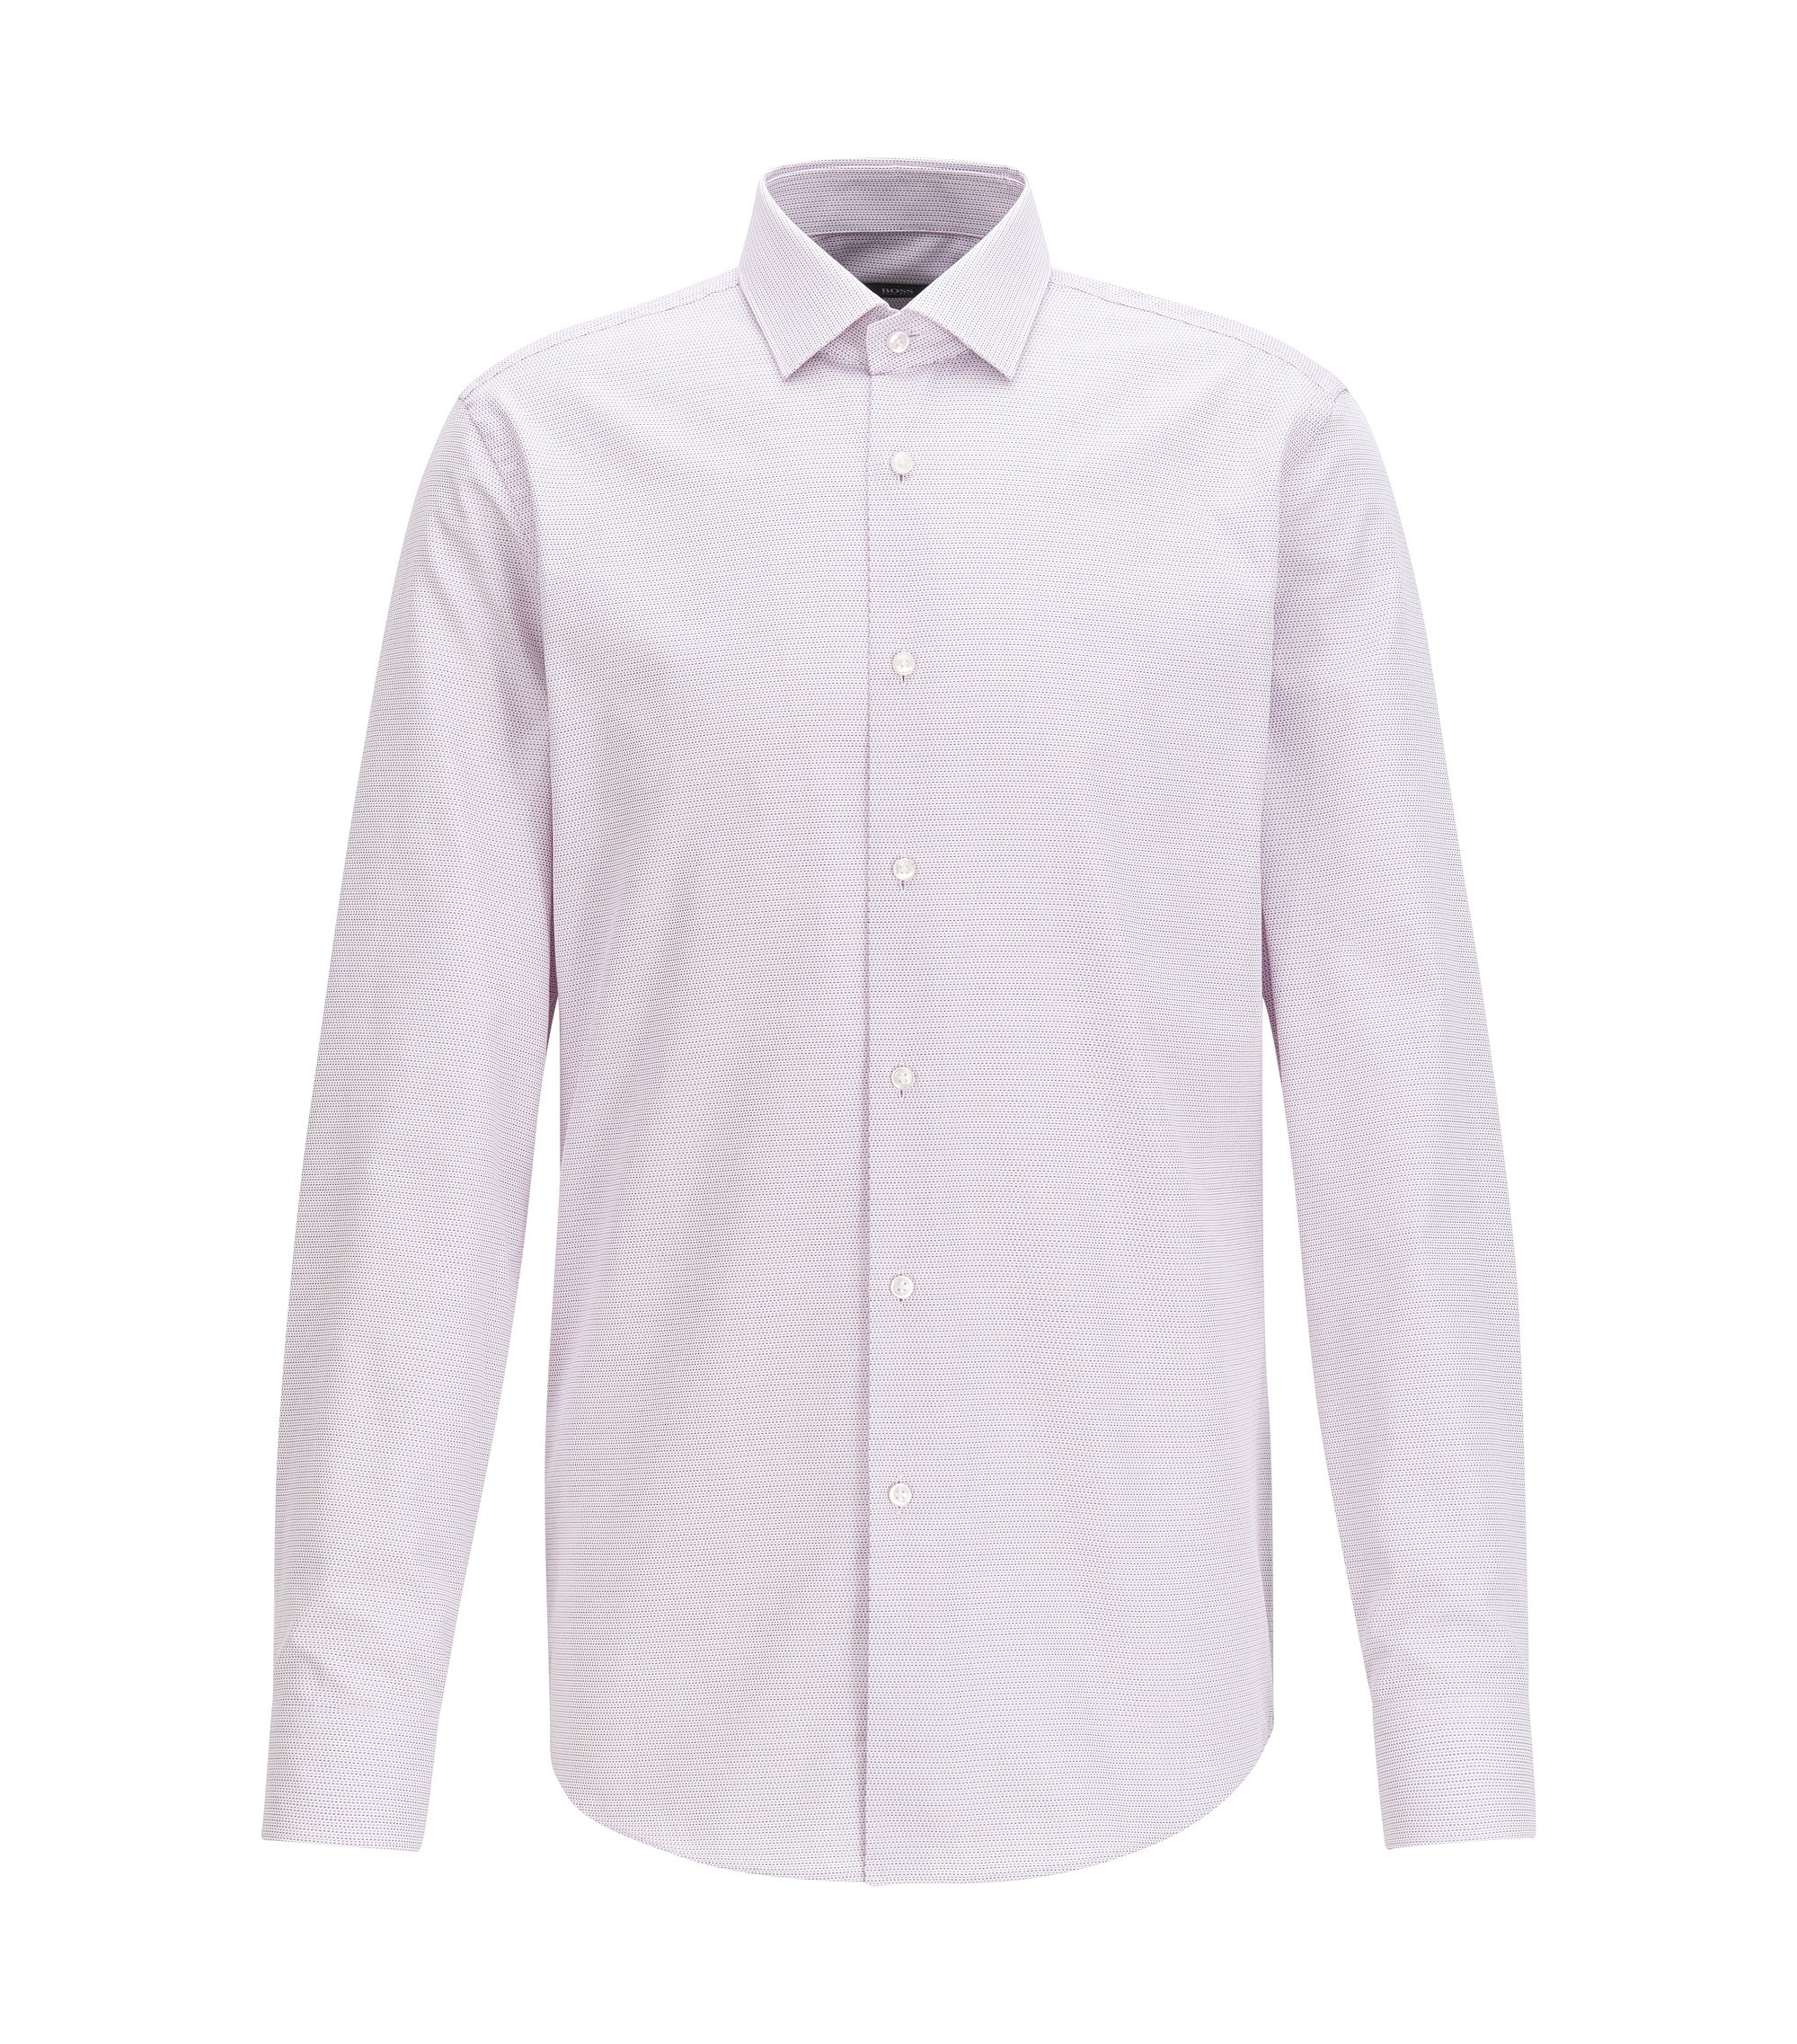 Slim-fit shirt in two-tone structured cotton, light pink